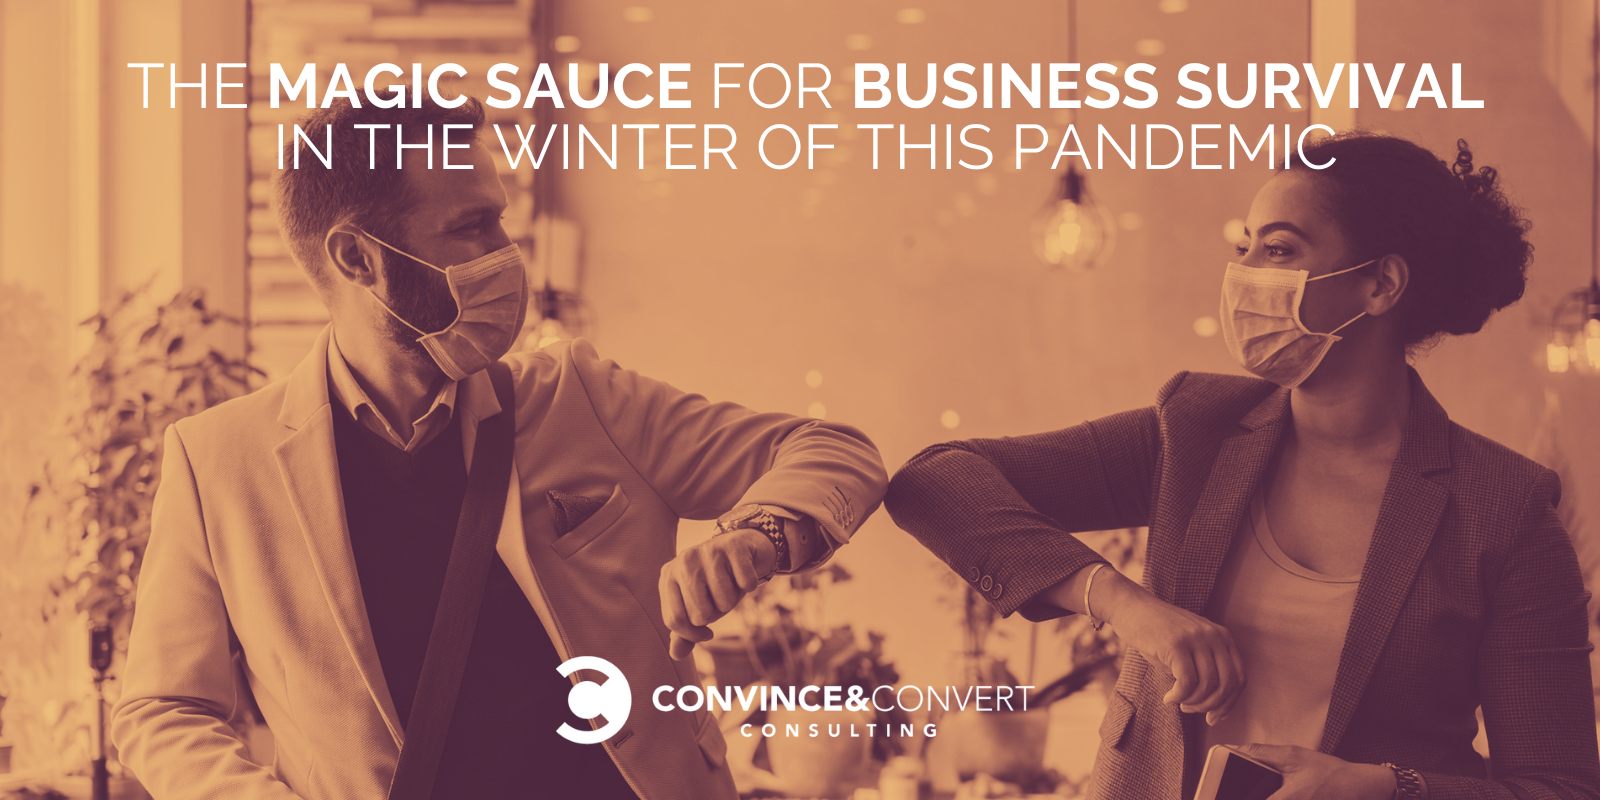 The Magic Sauce for Business Survival in the Winter of this Pandemic